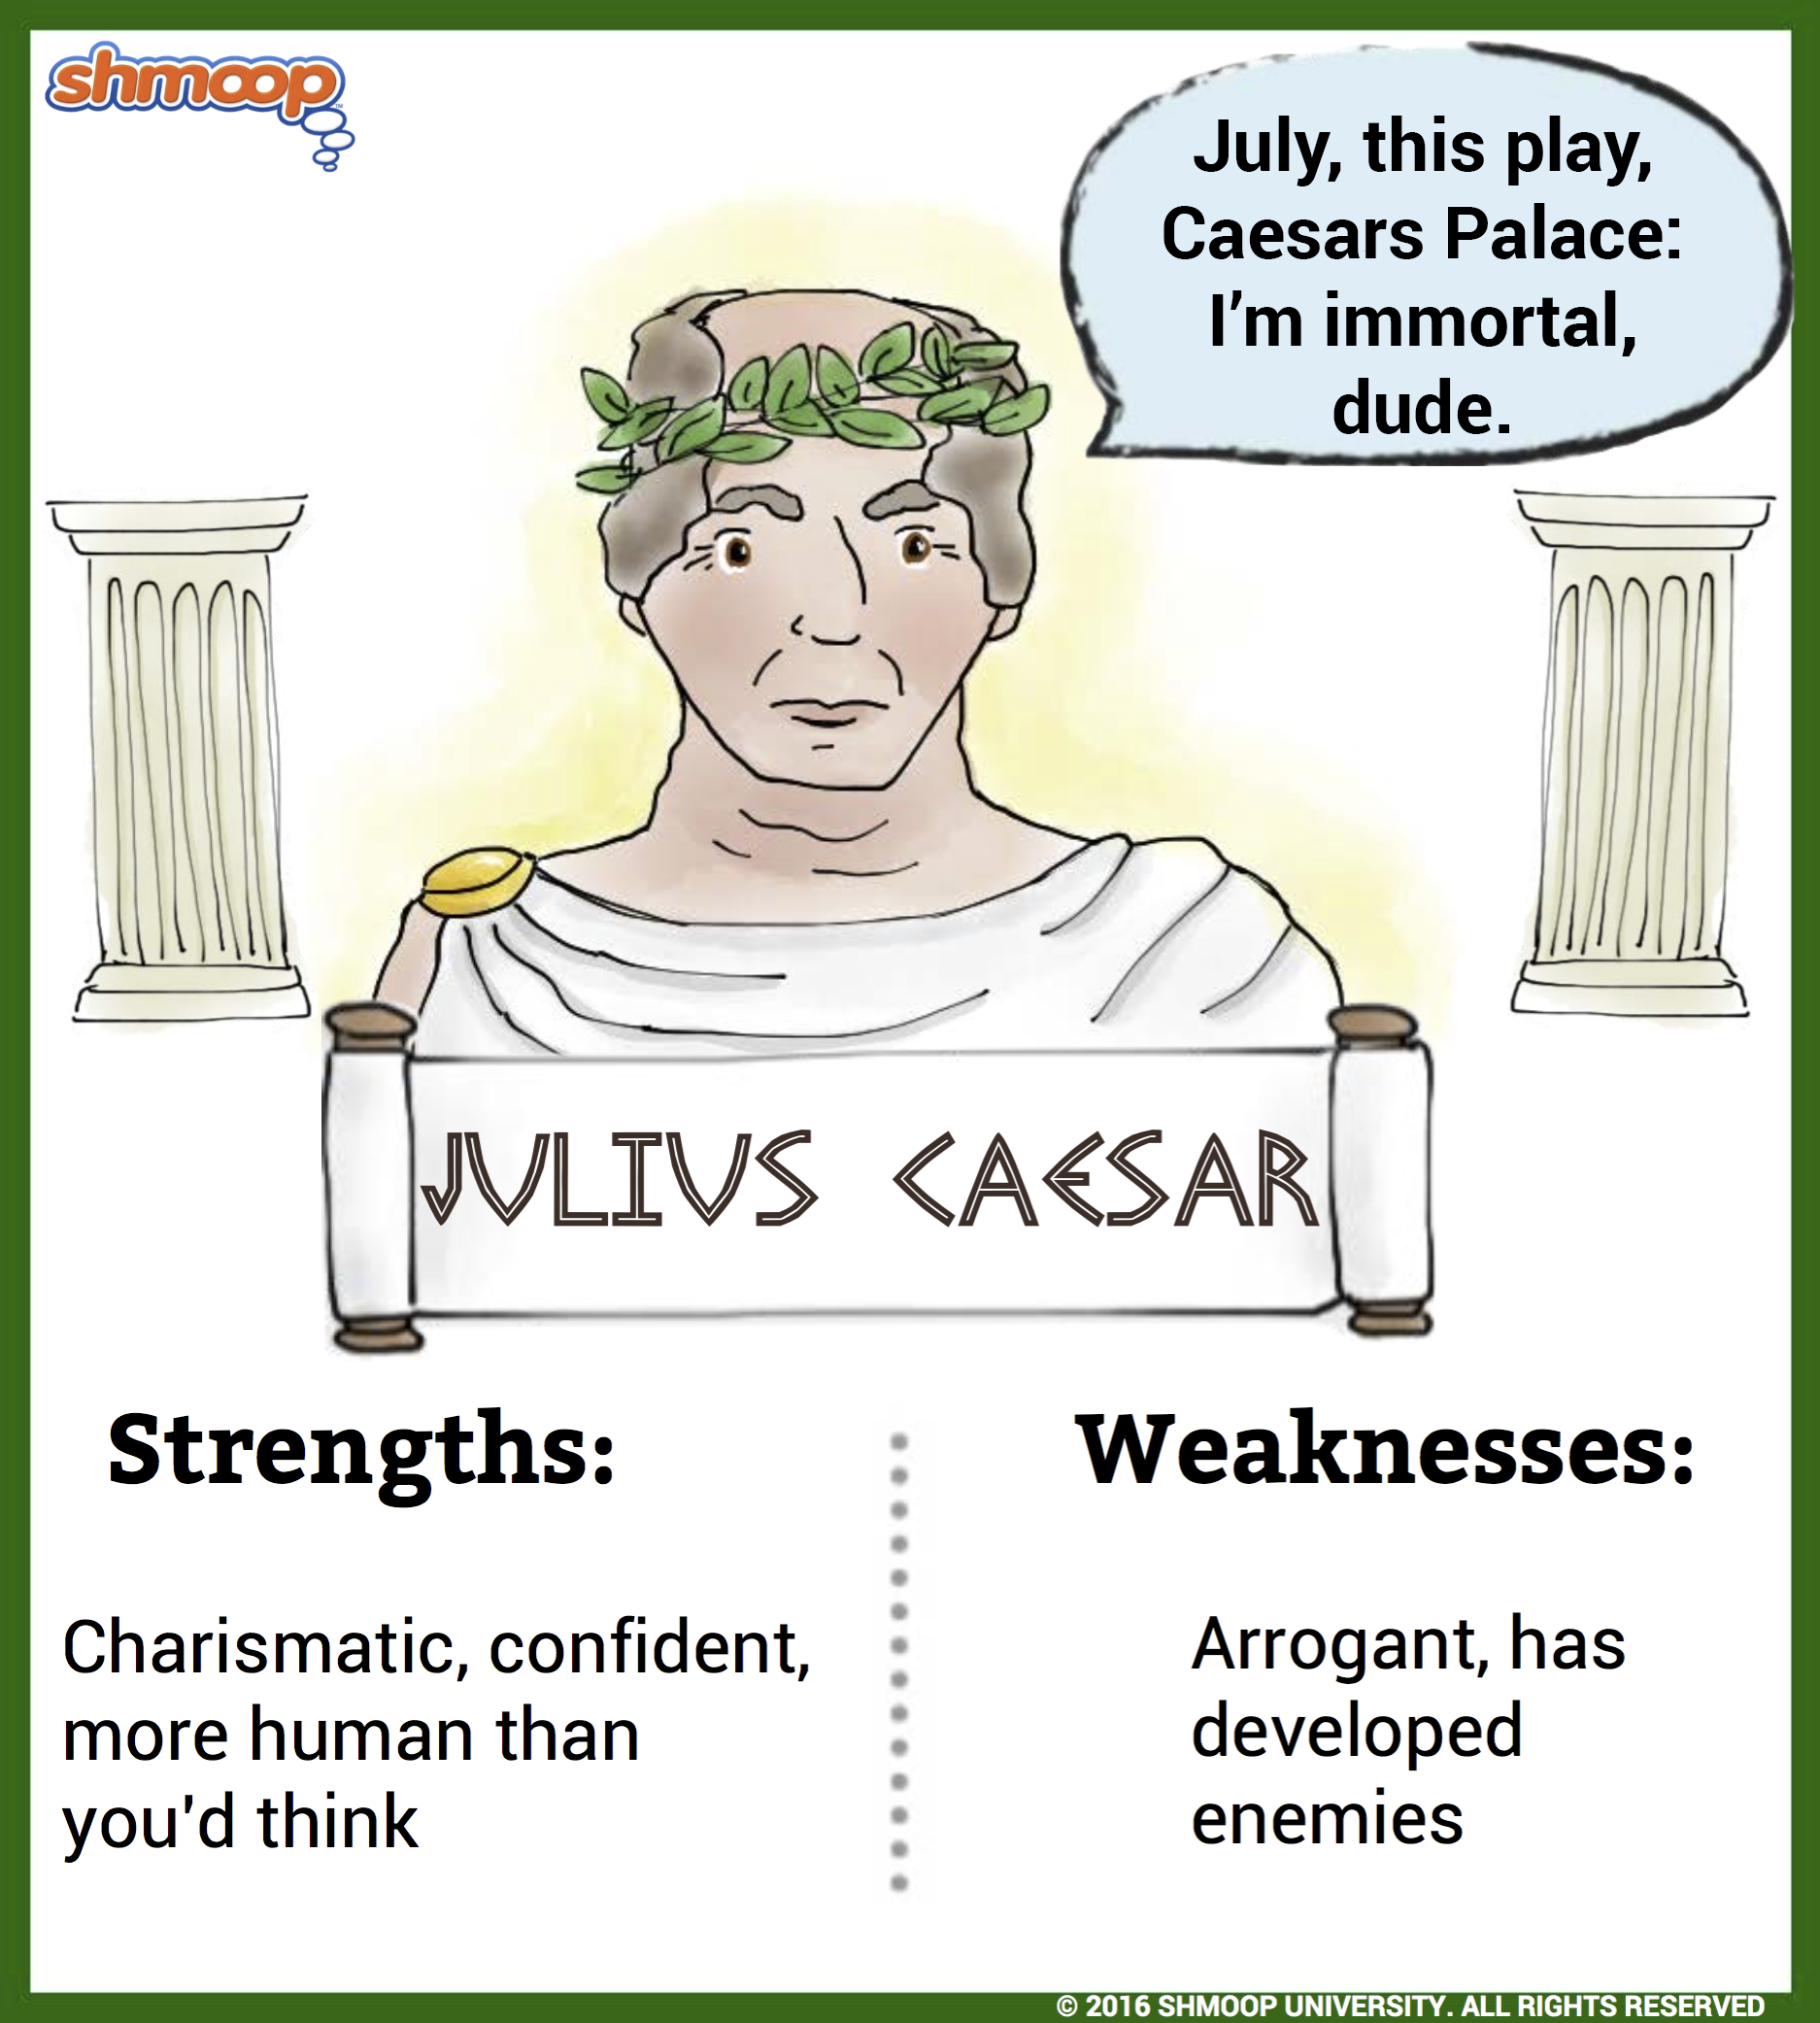 speech act1 Shakespeare was a master of figurative language, metaphor and irony find examples of metaphors and similes in julius caesar as well as themes in the play.